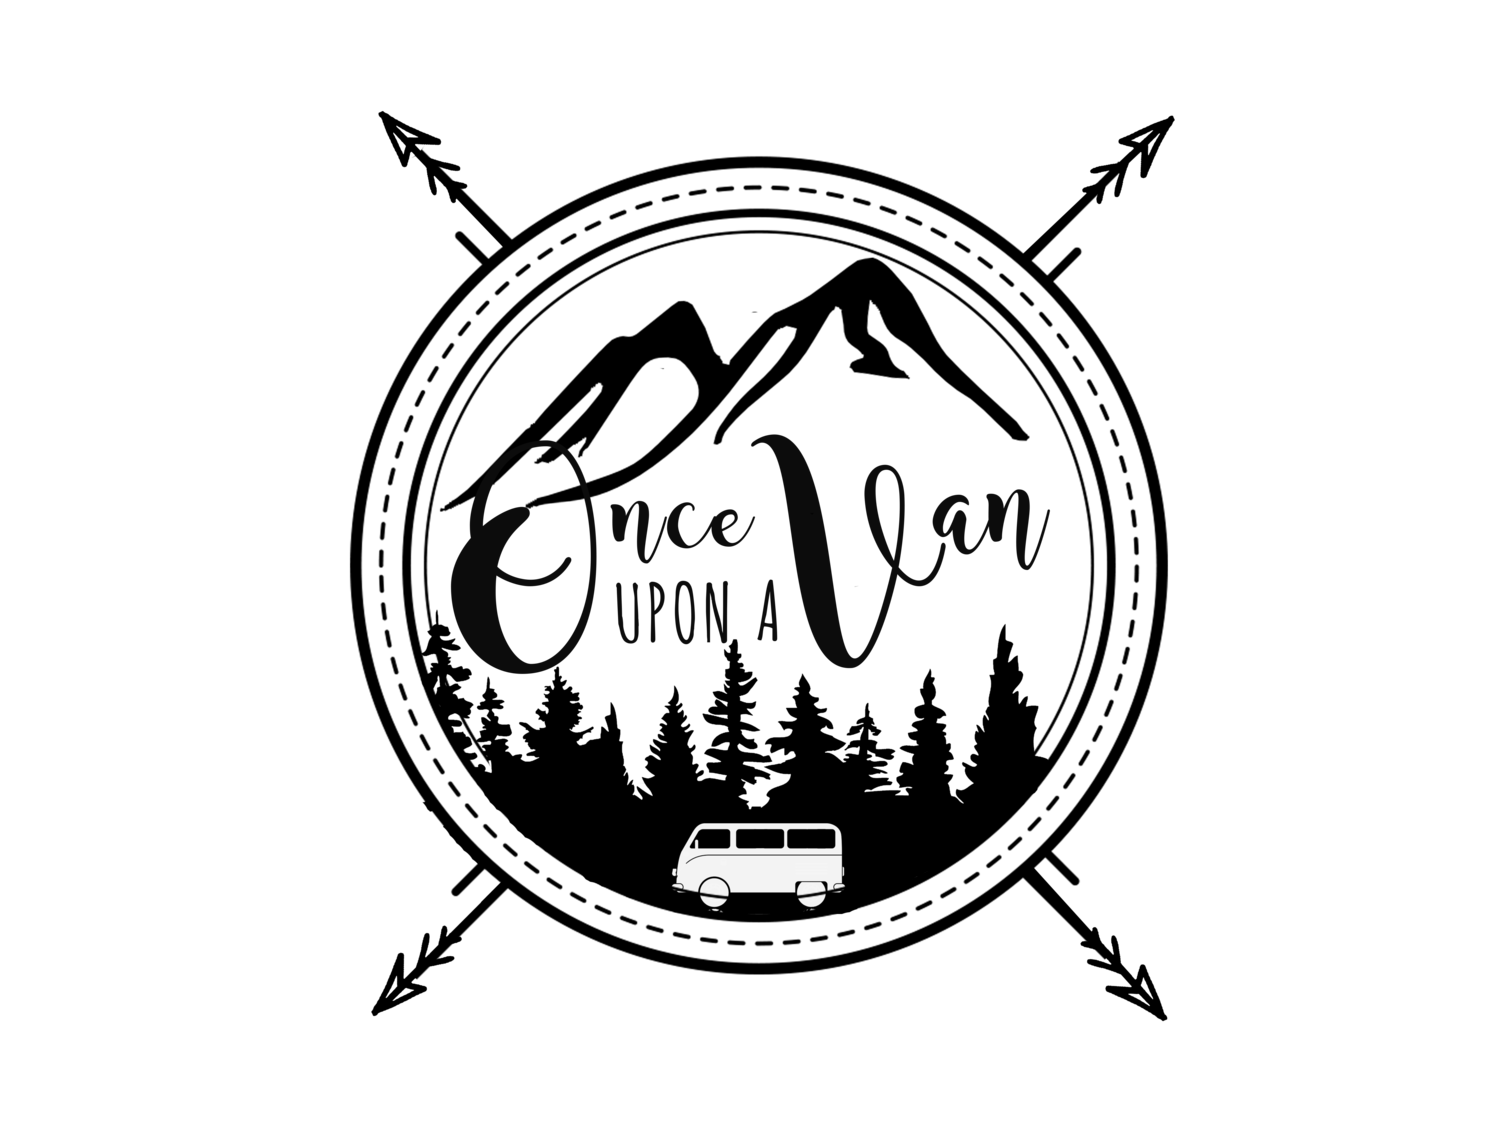 Once Upon a Van